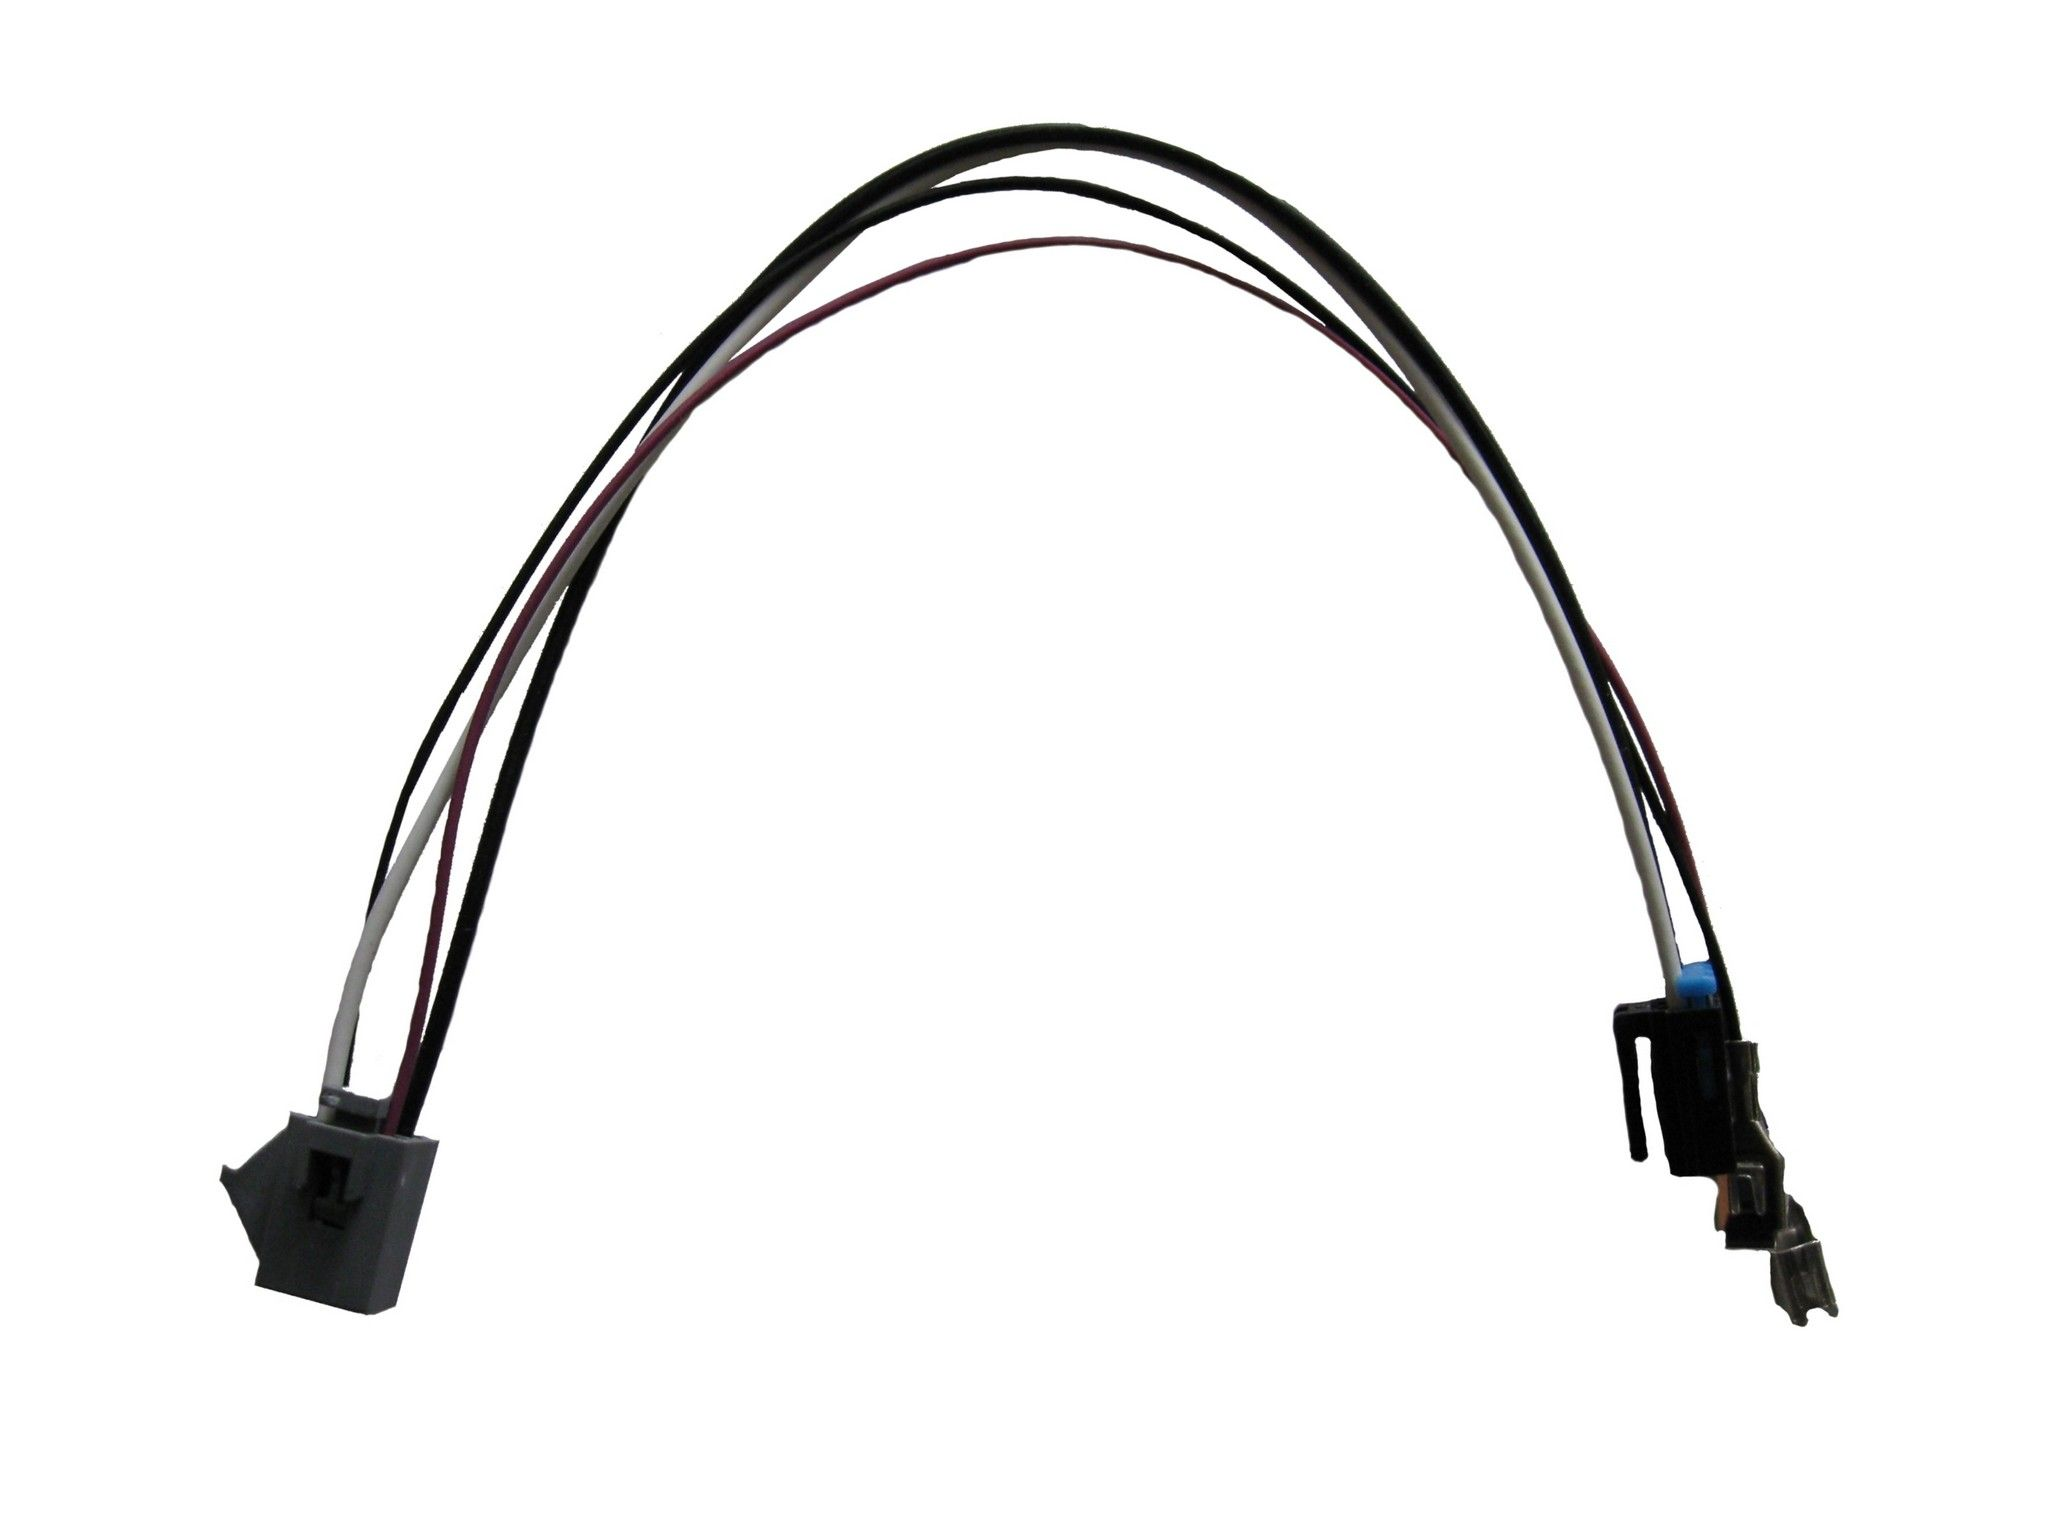 Gmc Safari Fuel Pump Wiring Harness Replacement Airtex Autobest Wire 1990 4 Cyl 25l Fw900